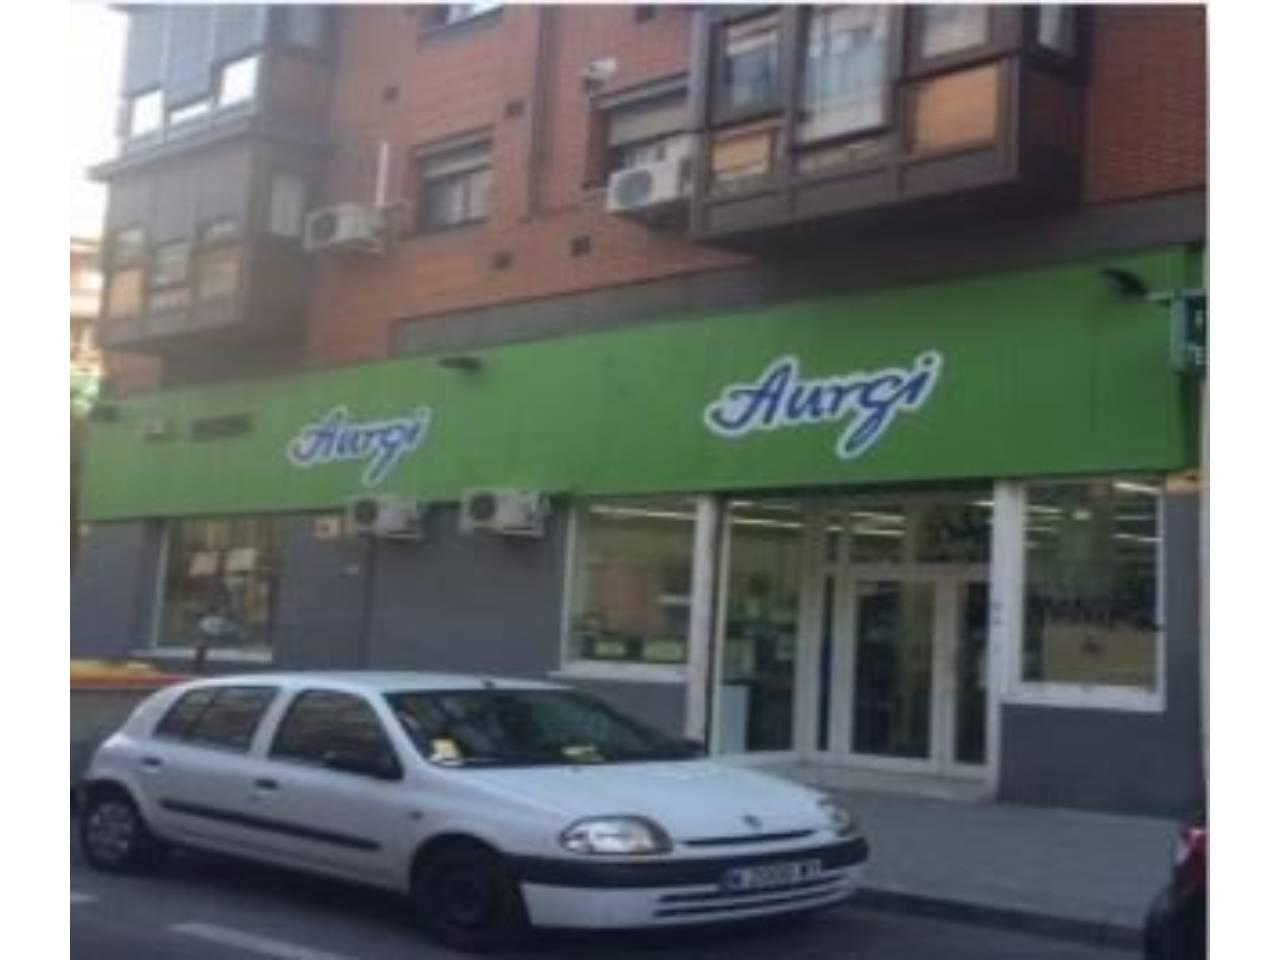 Local Comercial en Venta Carabanchel, Madrid